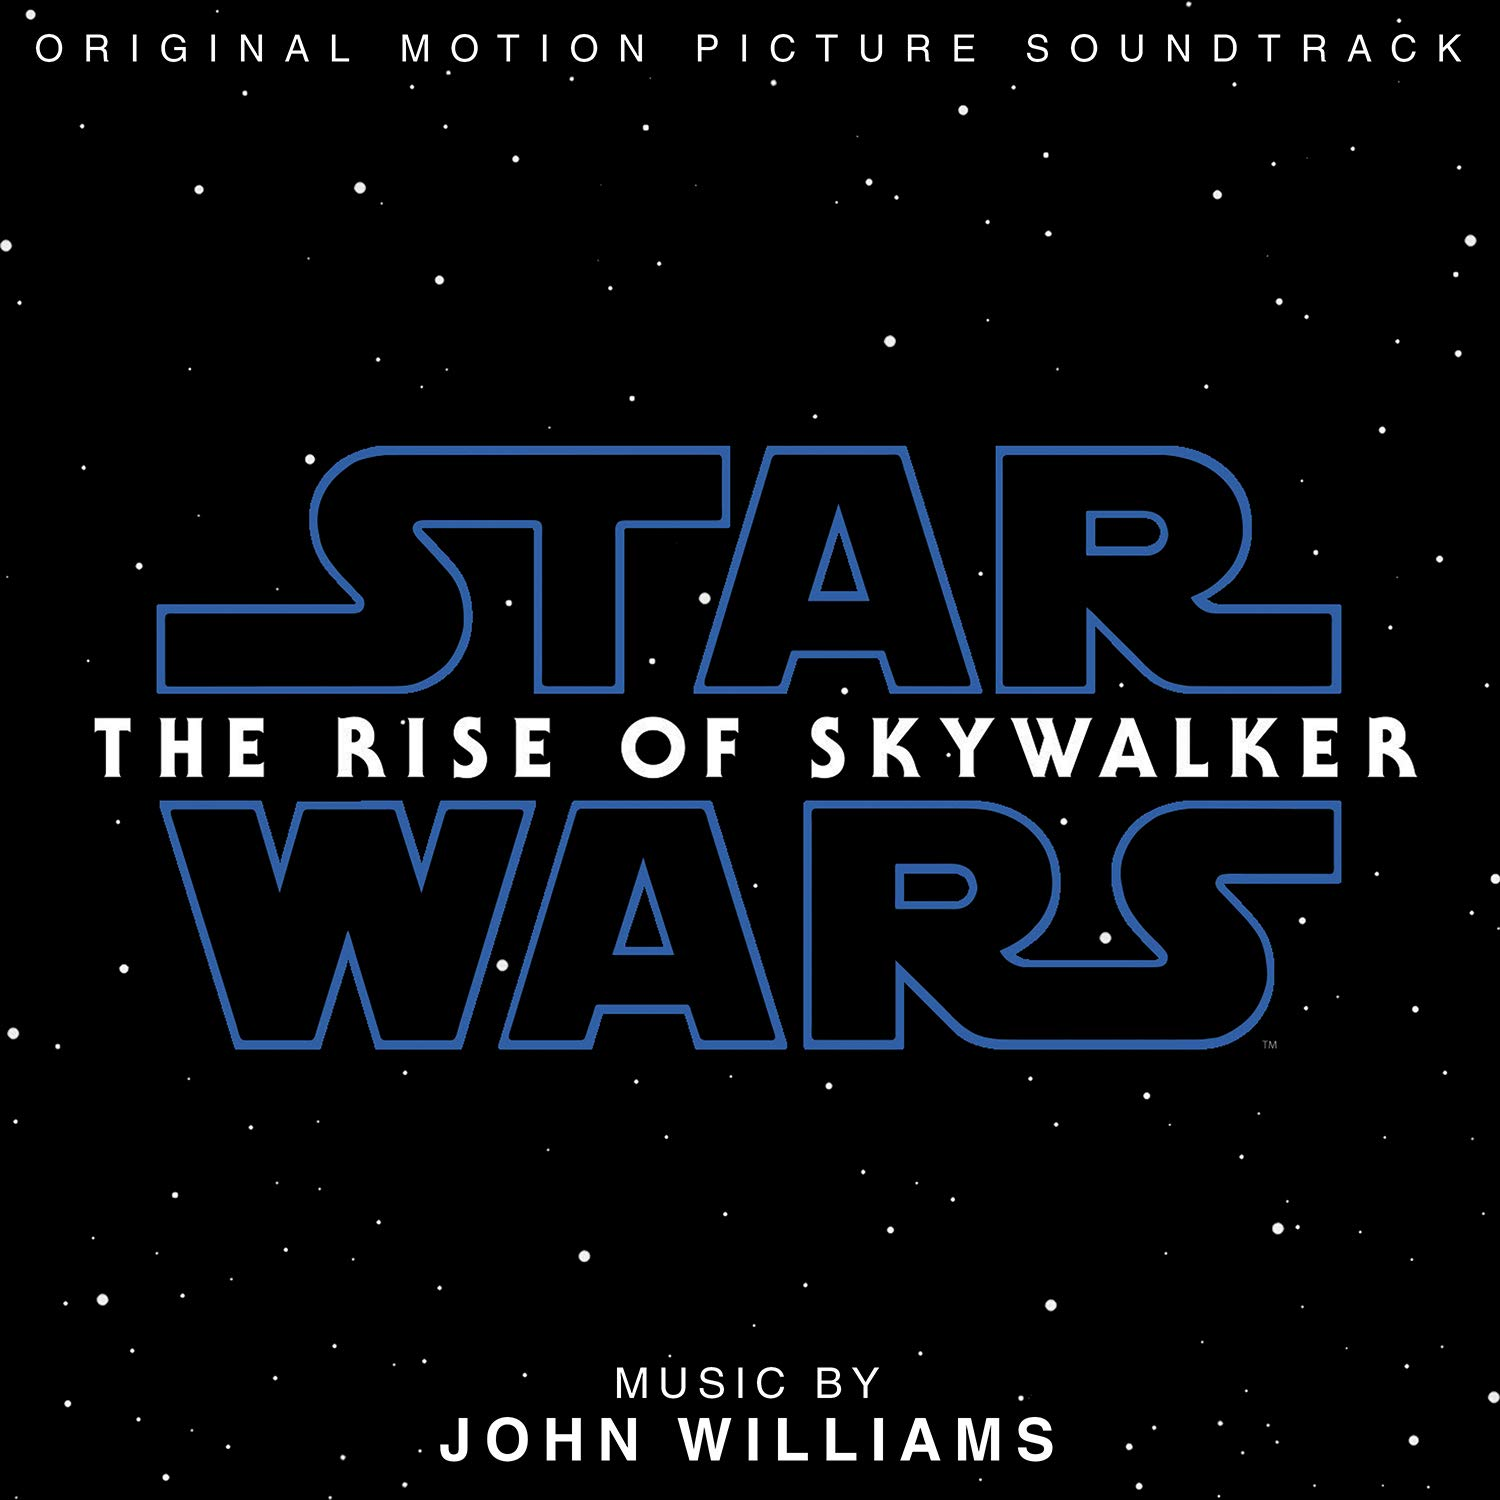 Star Wars: The Rise of Skywalker Original Motion Picture Soundtrack